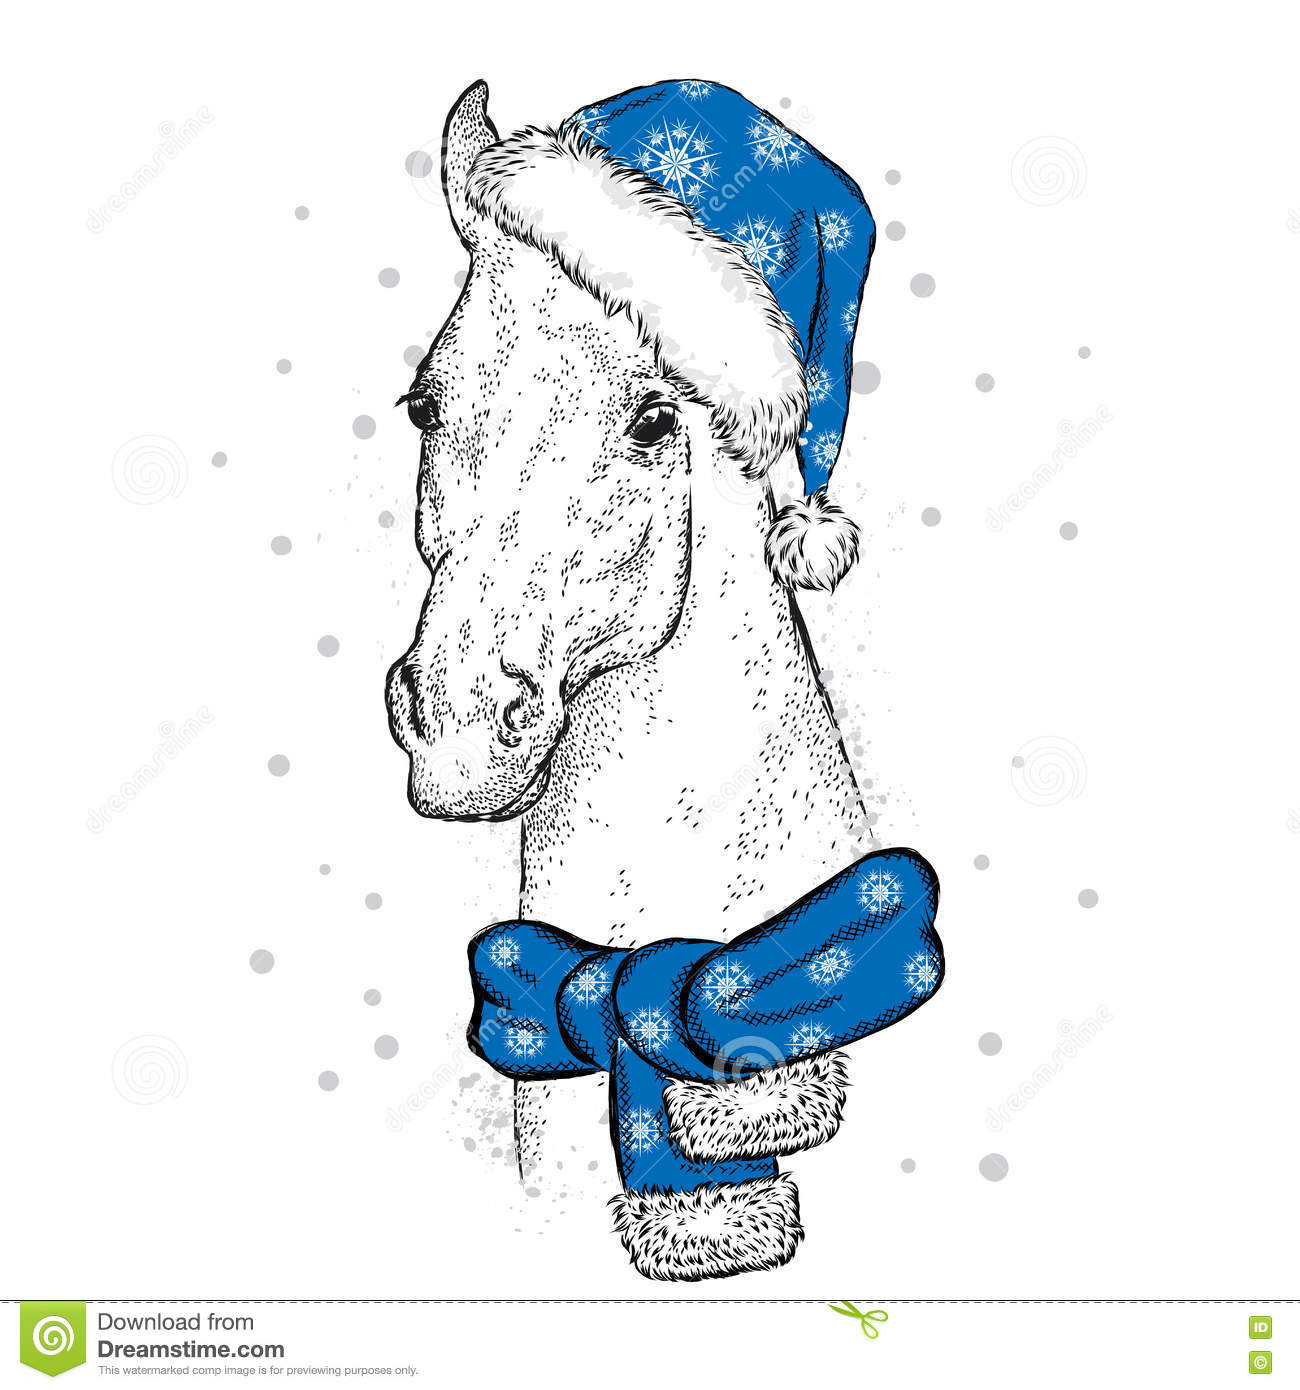 Beautiful Horse In A Christmas Hat And Scarf Santa Claus New Year S And Christmas Stock Vector Illustration Of Figure Design 81217373